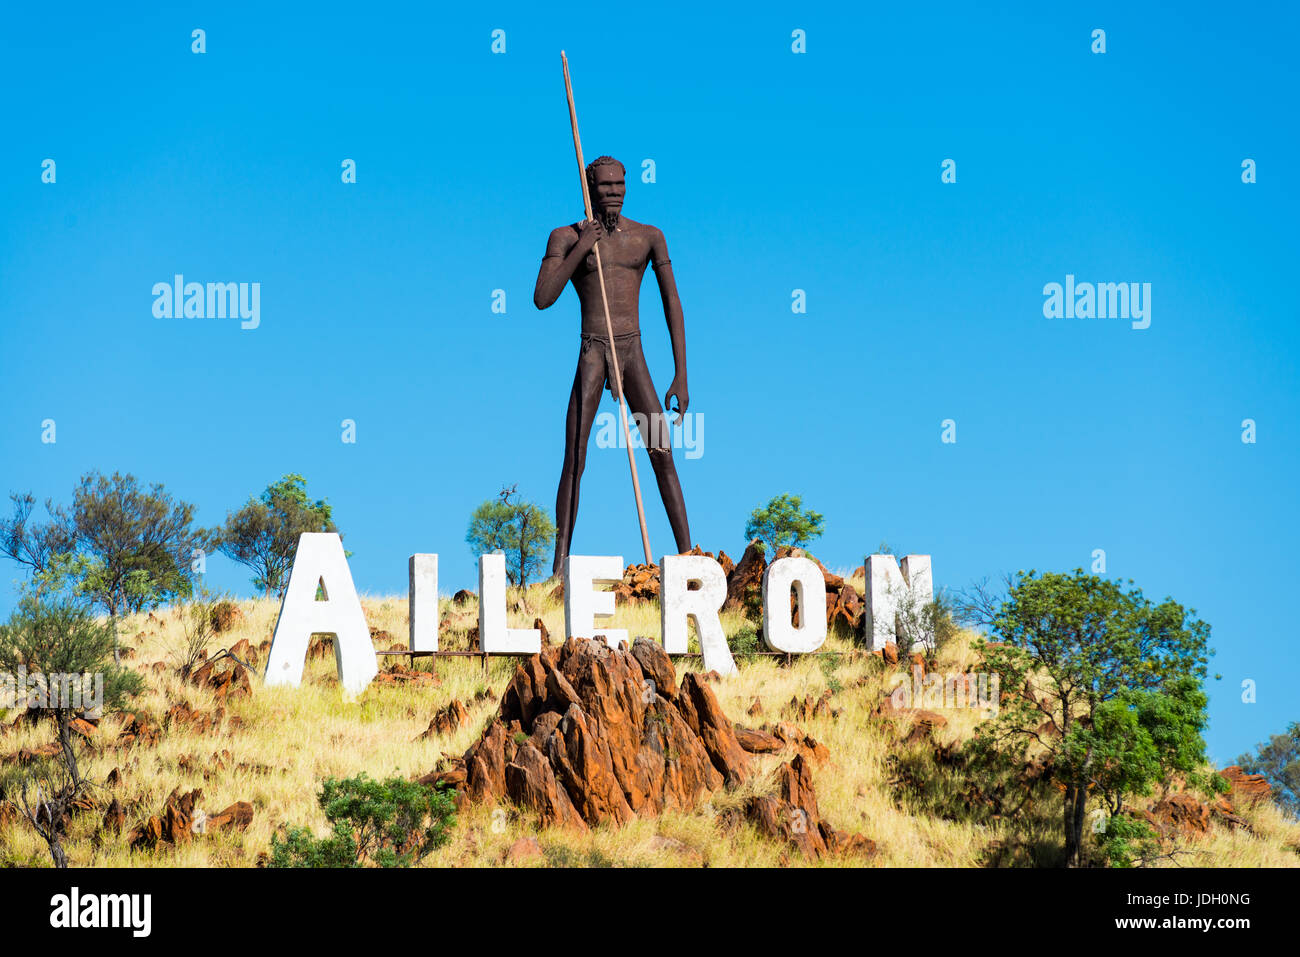 Huge iron sculpture of an aboriginal man at Aileron off the Stuart Highway north of Alice Springs, Northern Territory, Stock Photo